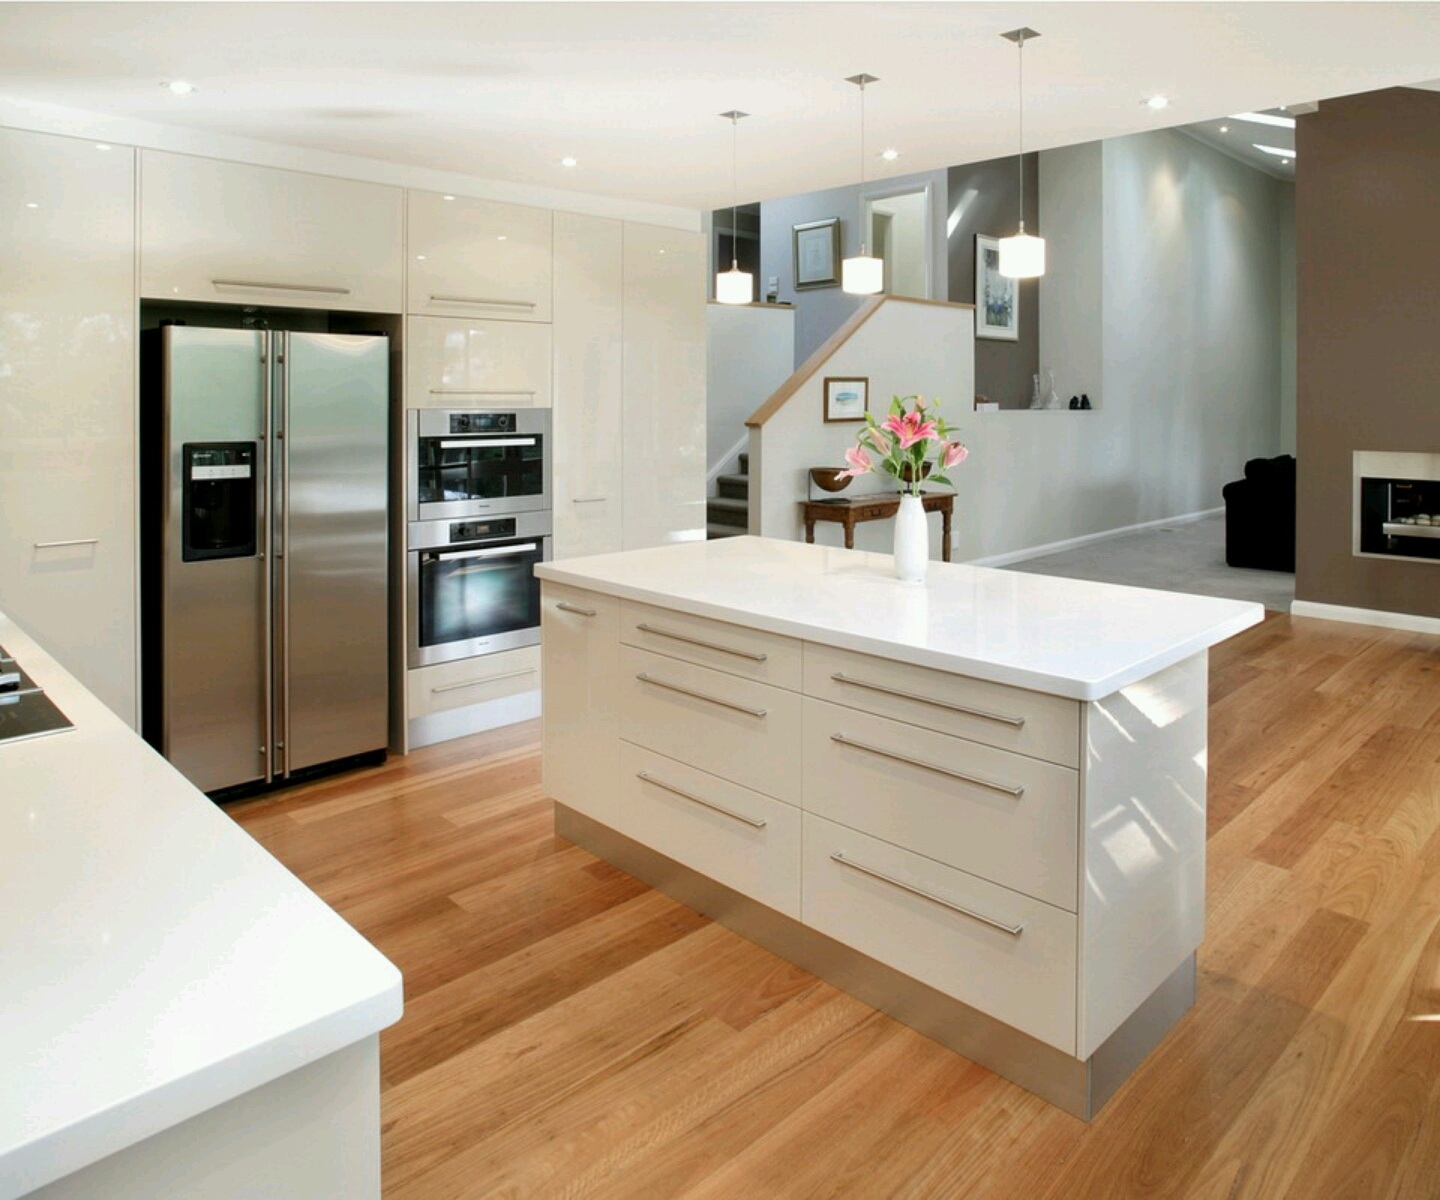 Luxury kitchen, modern kitchen cabinets designs. ~ Furniture Gallery